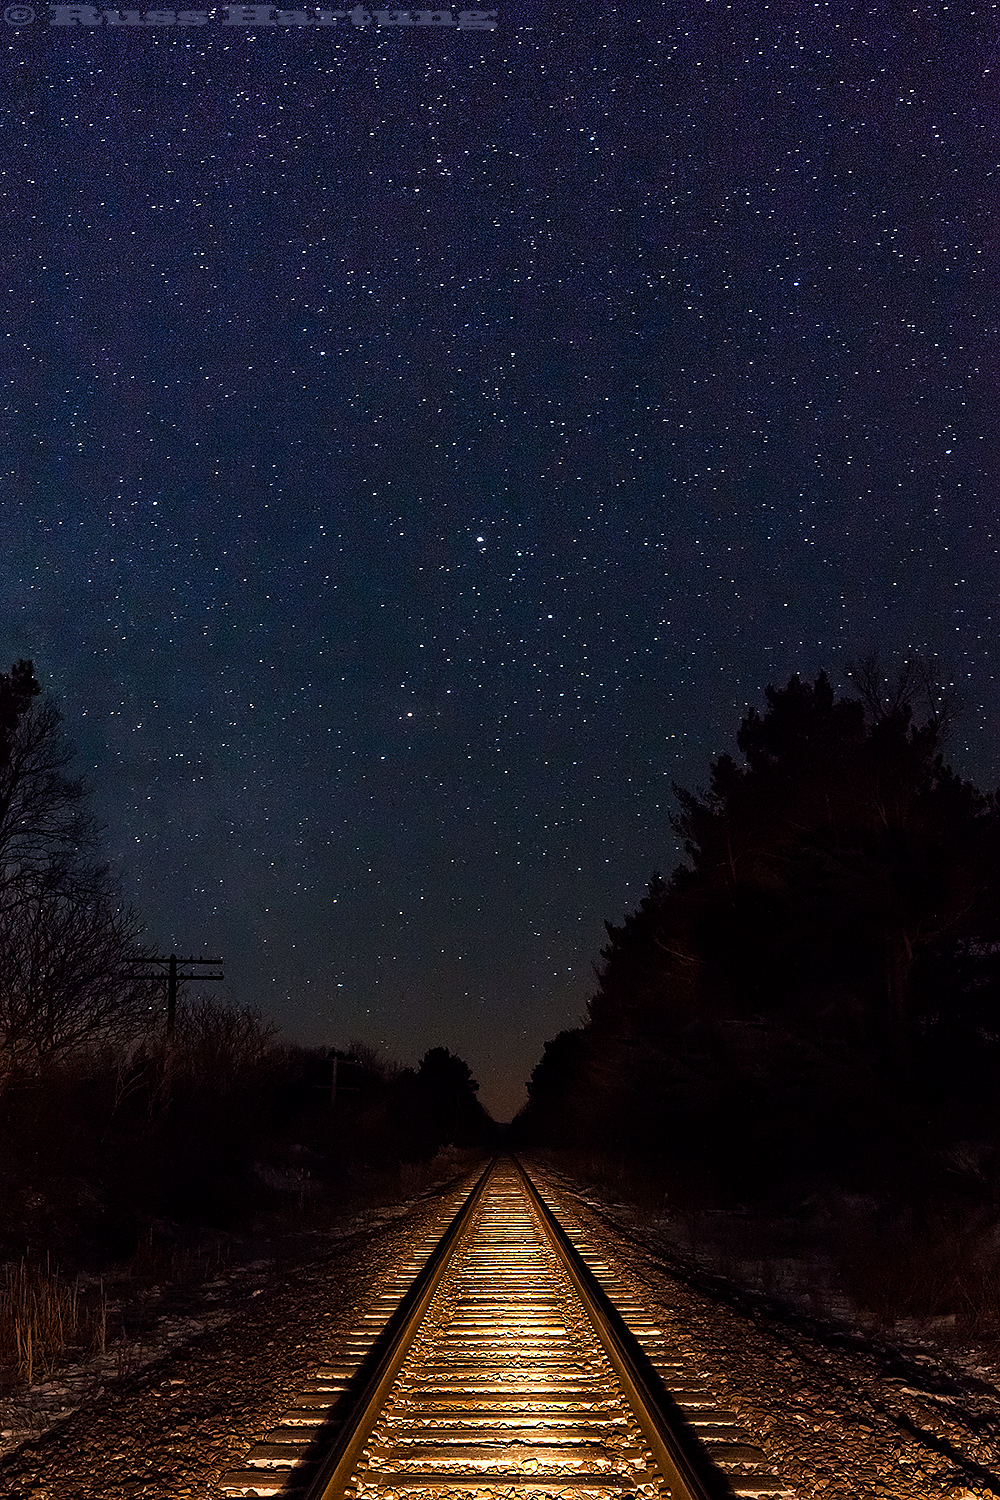 Train tracks at night.